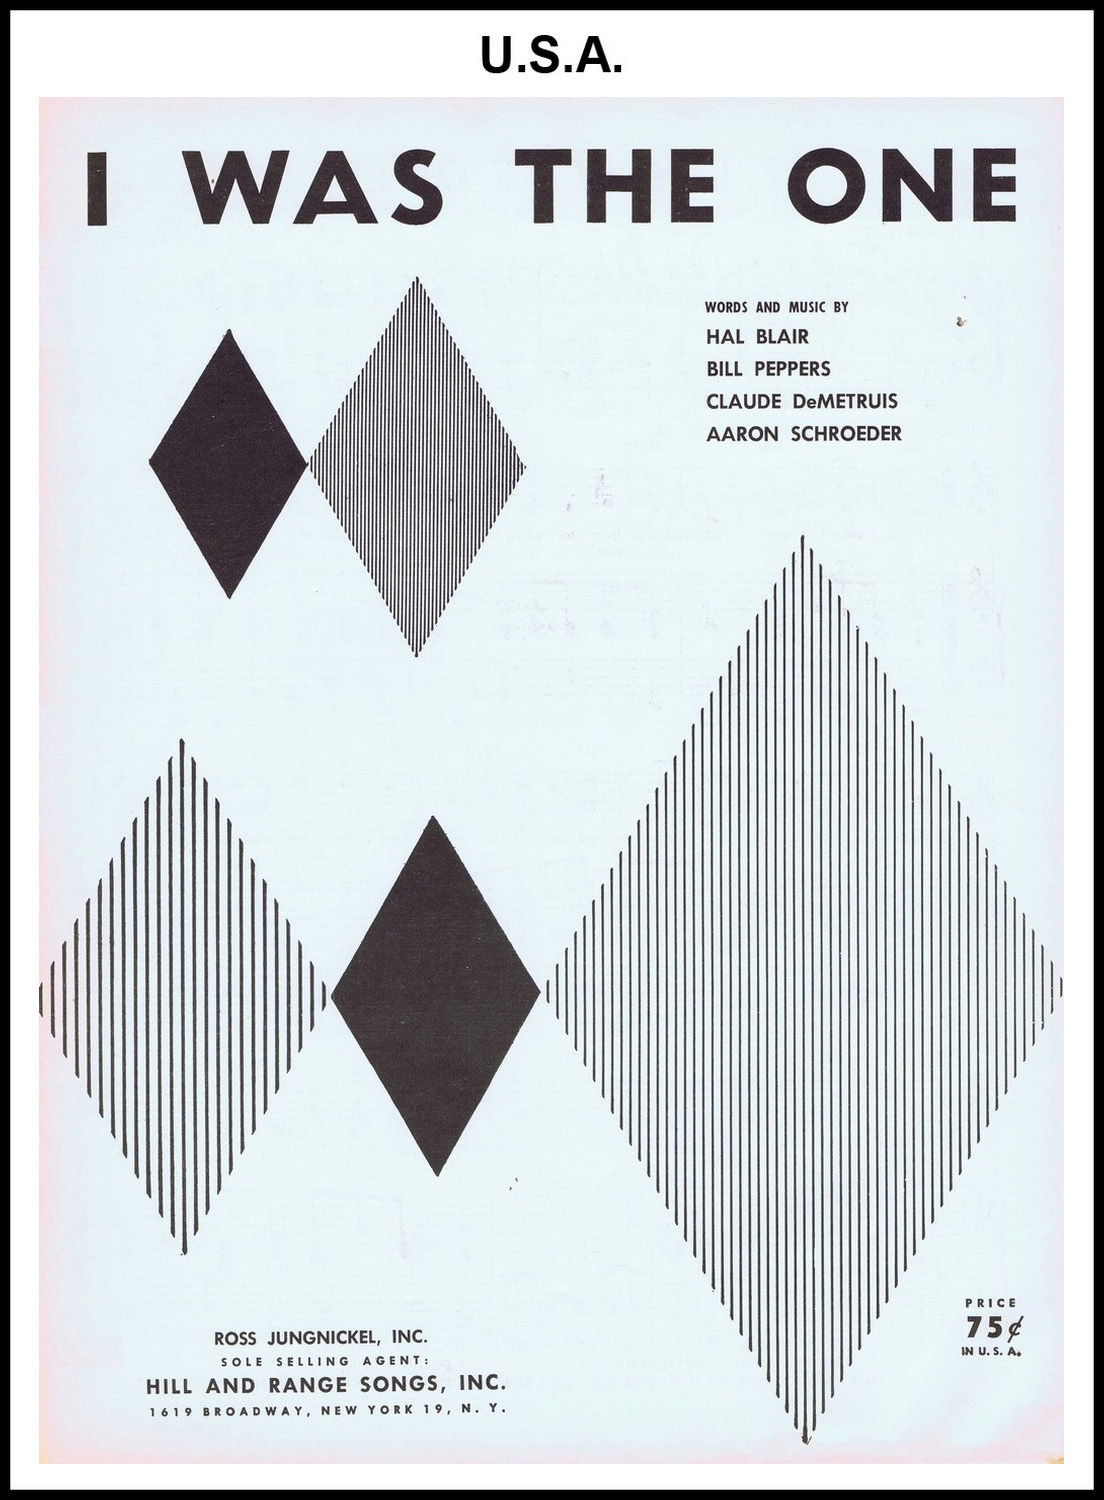 1956 - I Was The One (USA 75c) (CHRIS GILES COLLECTION)